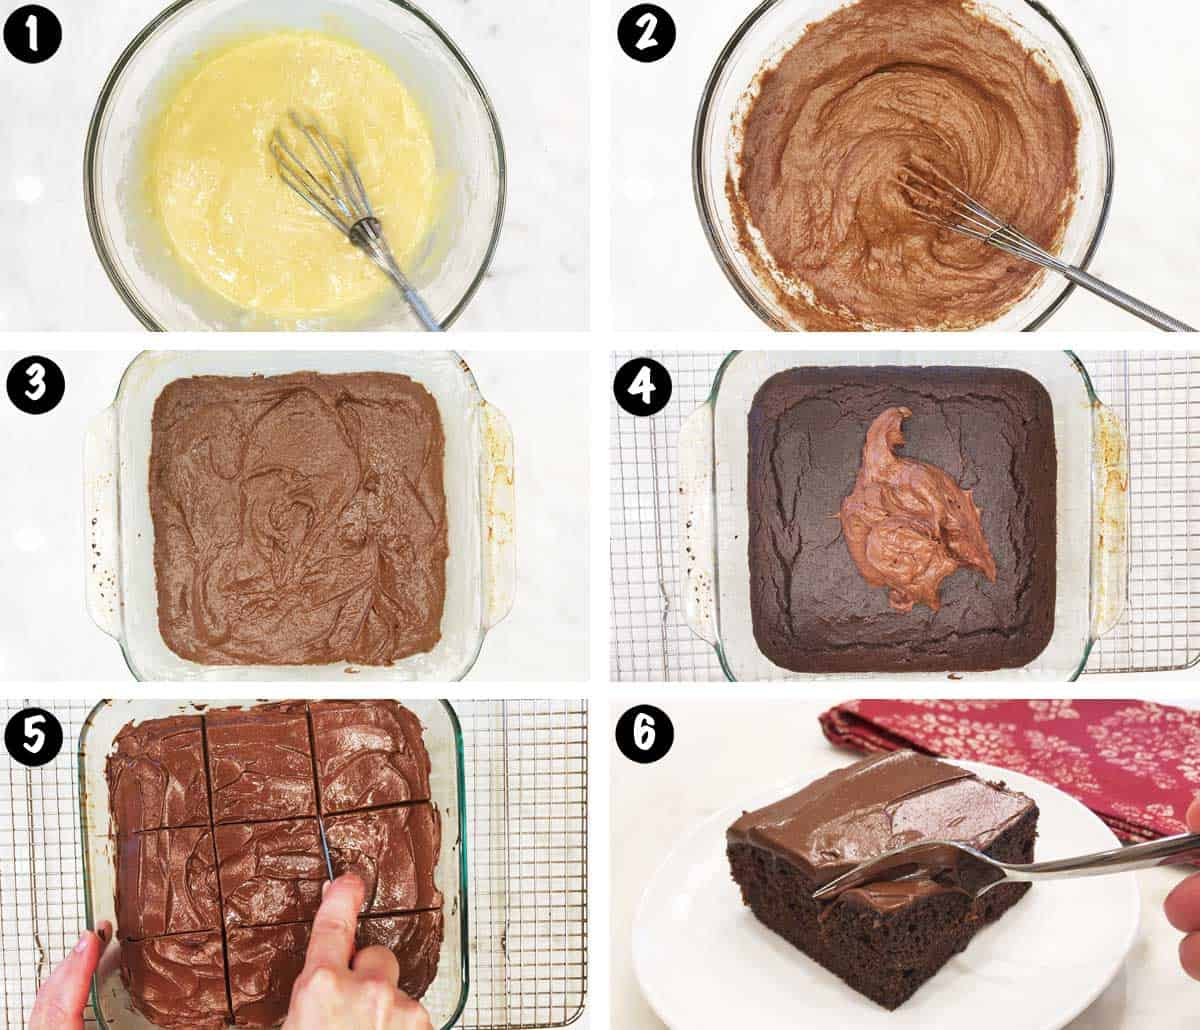 A photo collage showing the steps for making a low-carb chocolate cake.